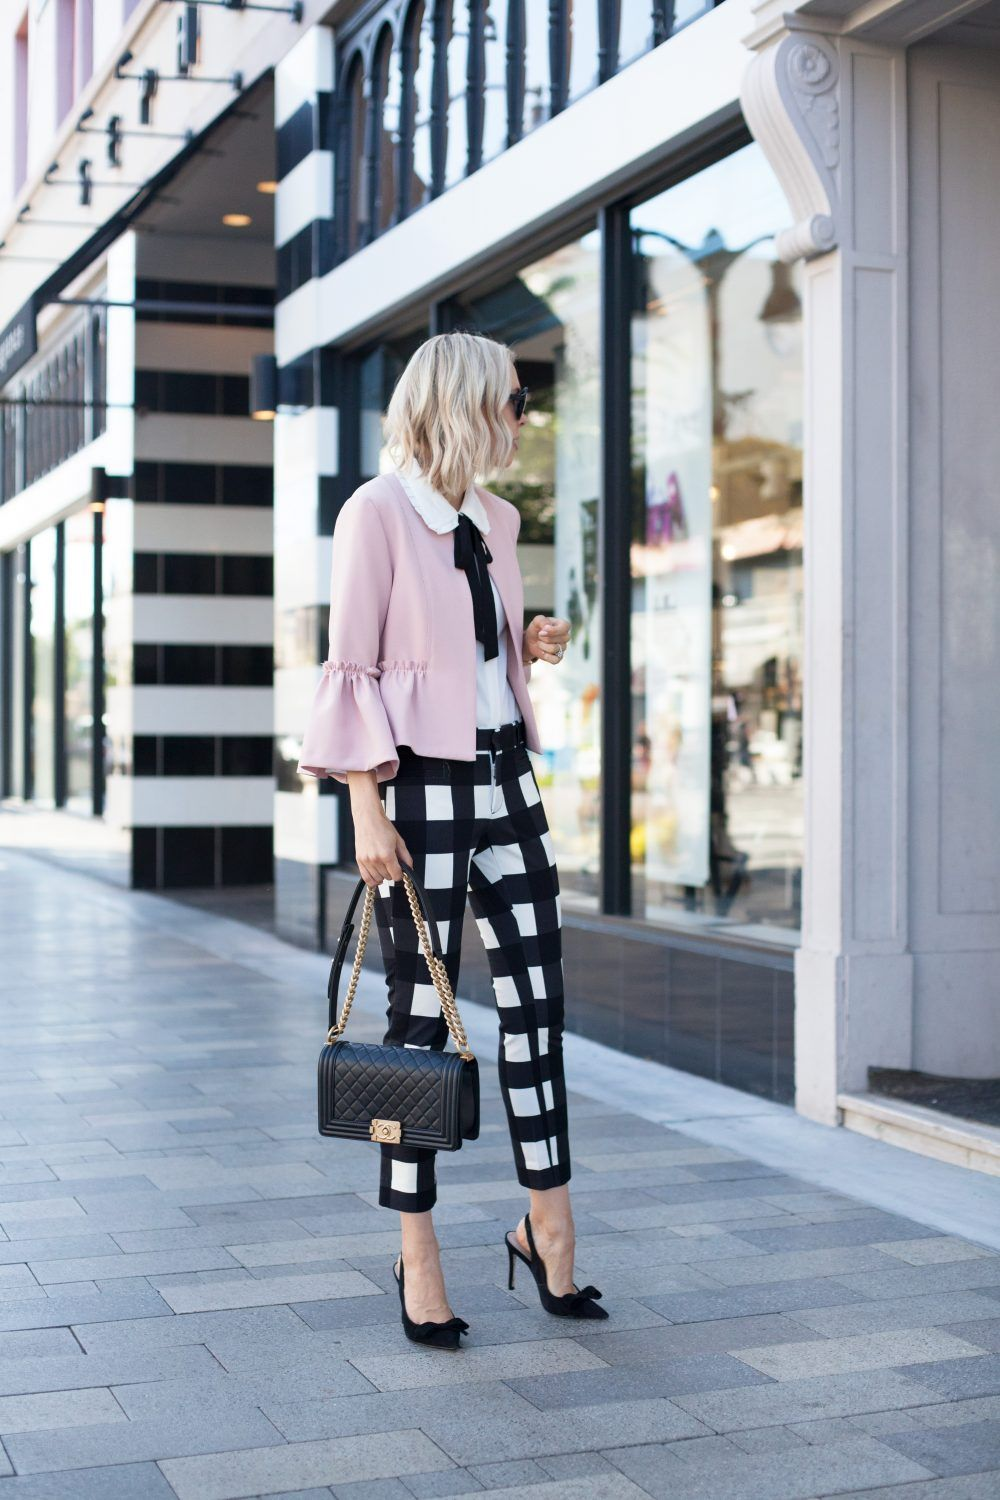 Top | Blazer (similar) | Pants | Bag | Shoes (similar) | As he sees my outfit, my rock star photographer aka my dad excitedly says 'ah I know the perfect place to shoot that would match those pants!' This literally makes my day! Shooting my blog content with my dad is one of the...